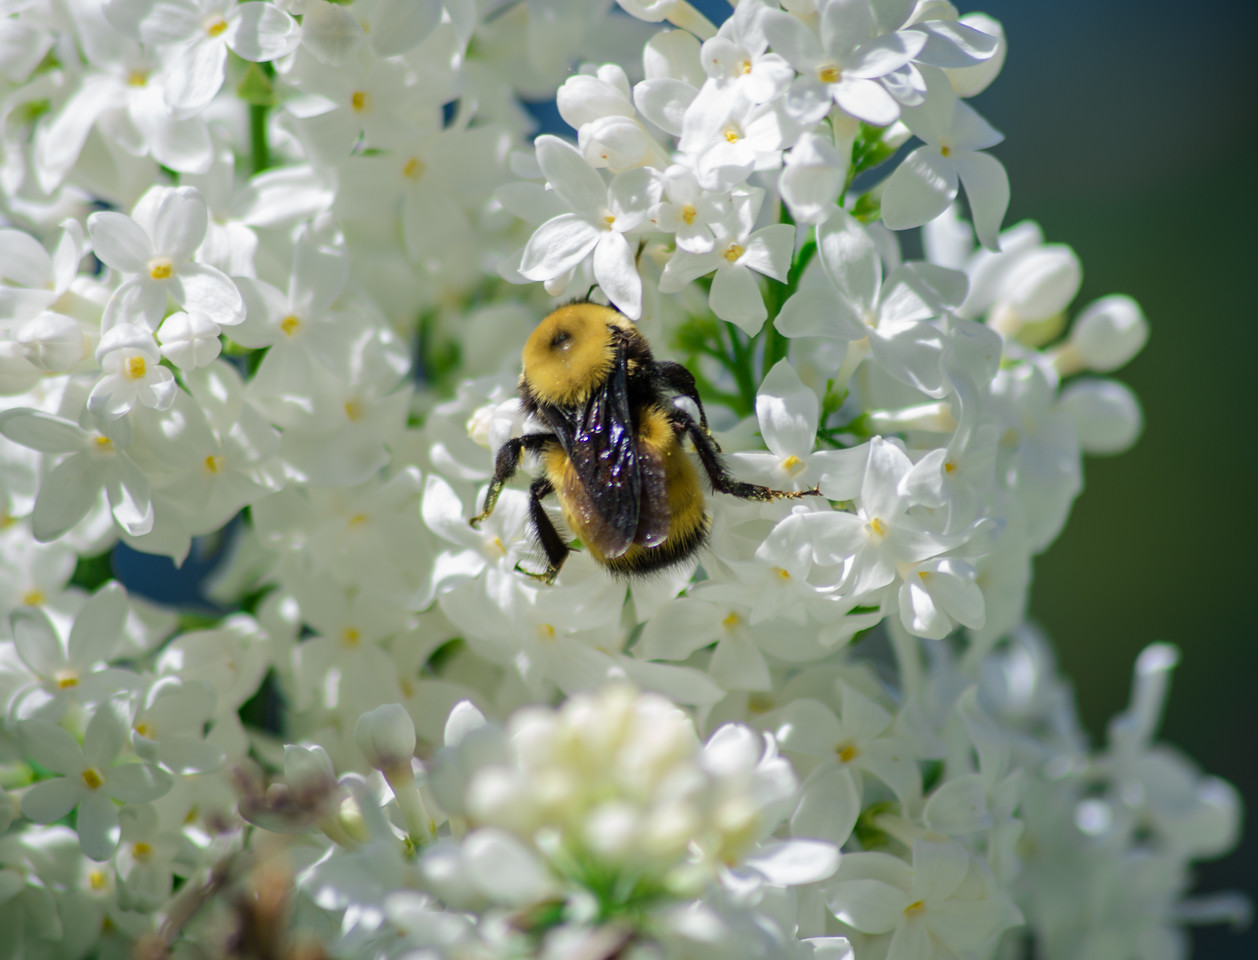 Bumble bee in the Lilac Garden